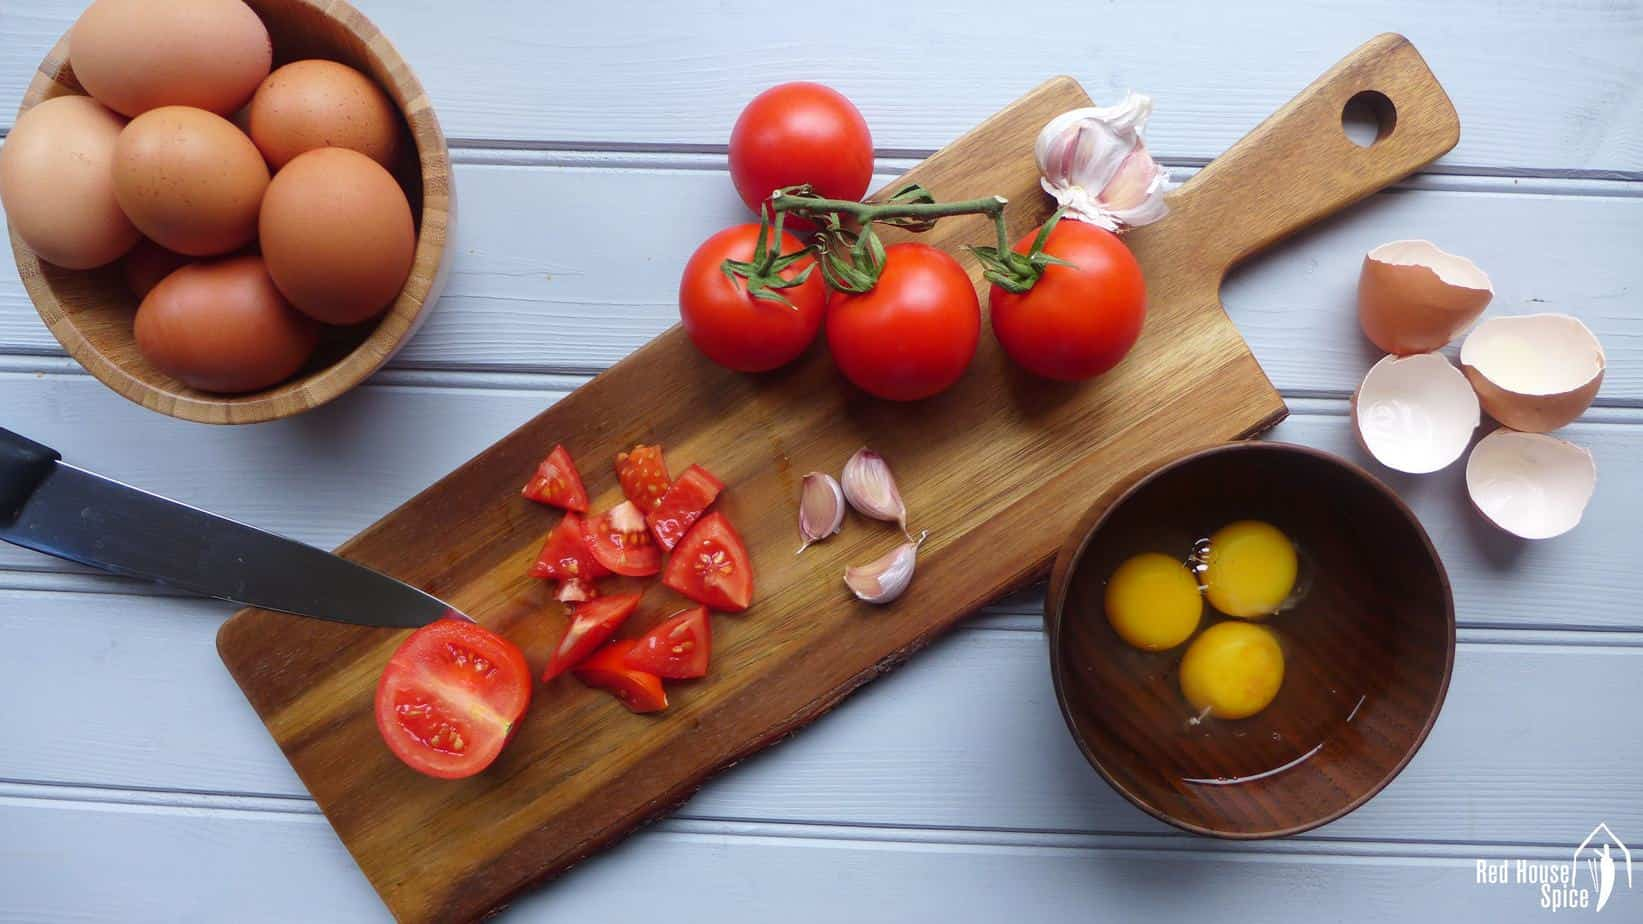 Eggs, tomato and garlic on a chopping board.